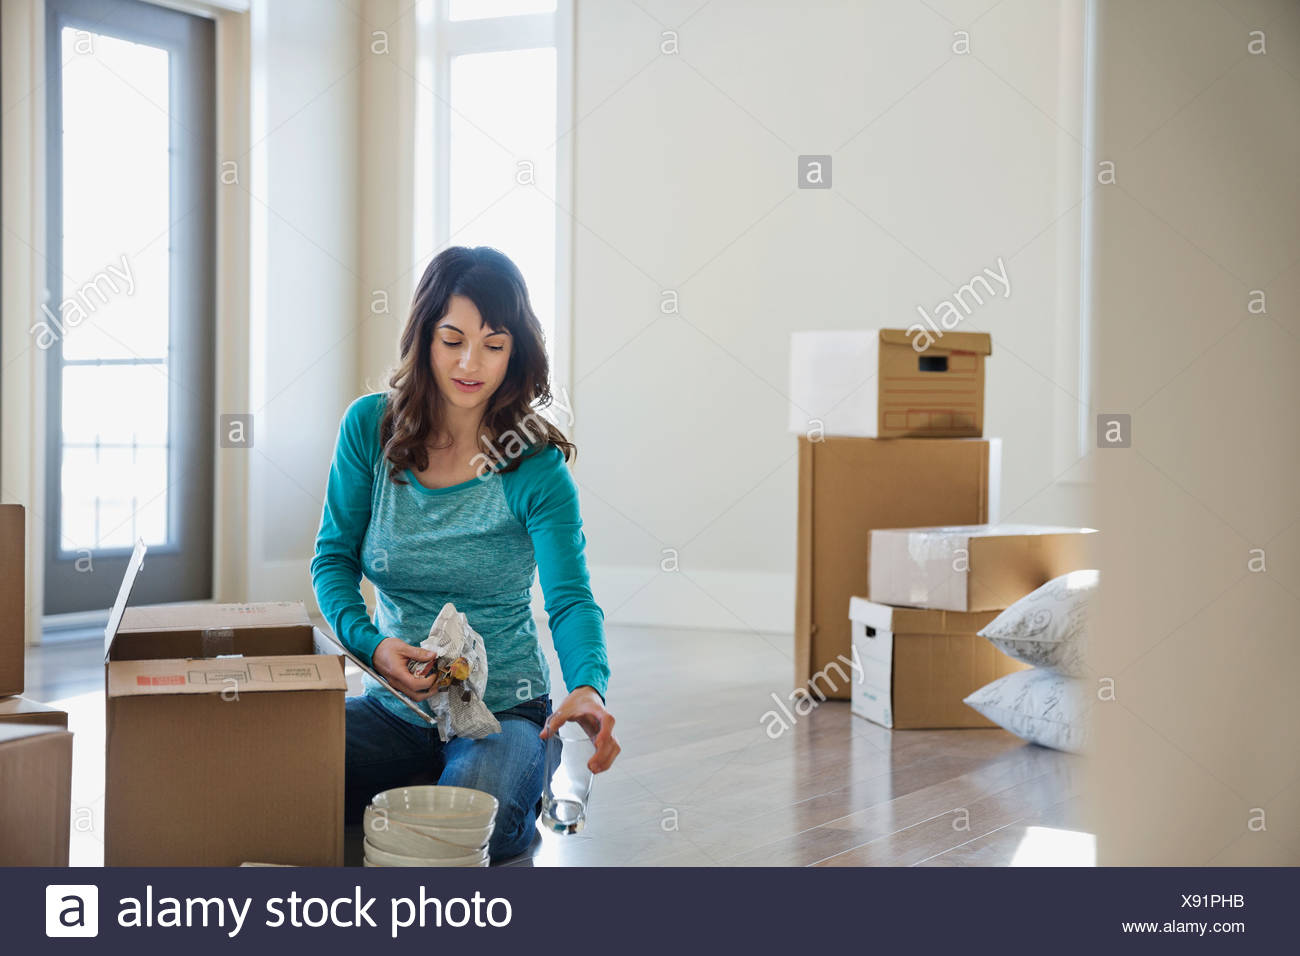 Woman unpacking cardboard boxes in new home - Stock Image